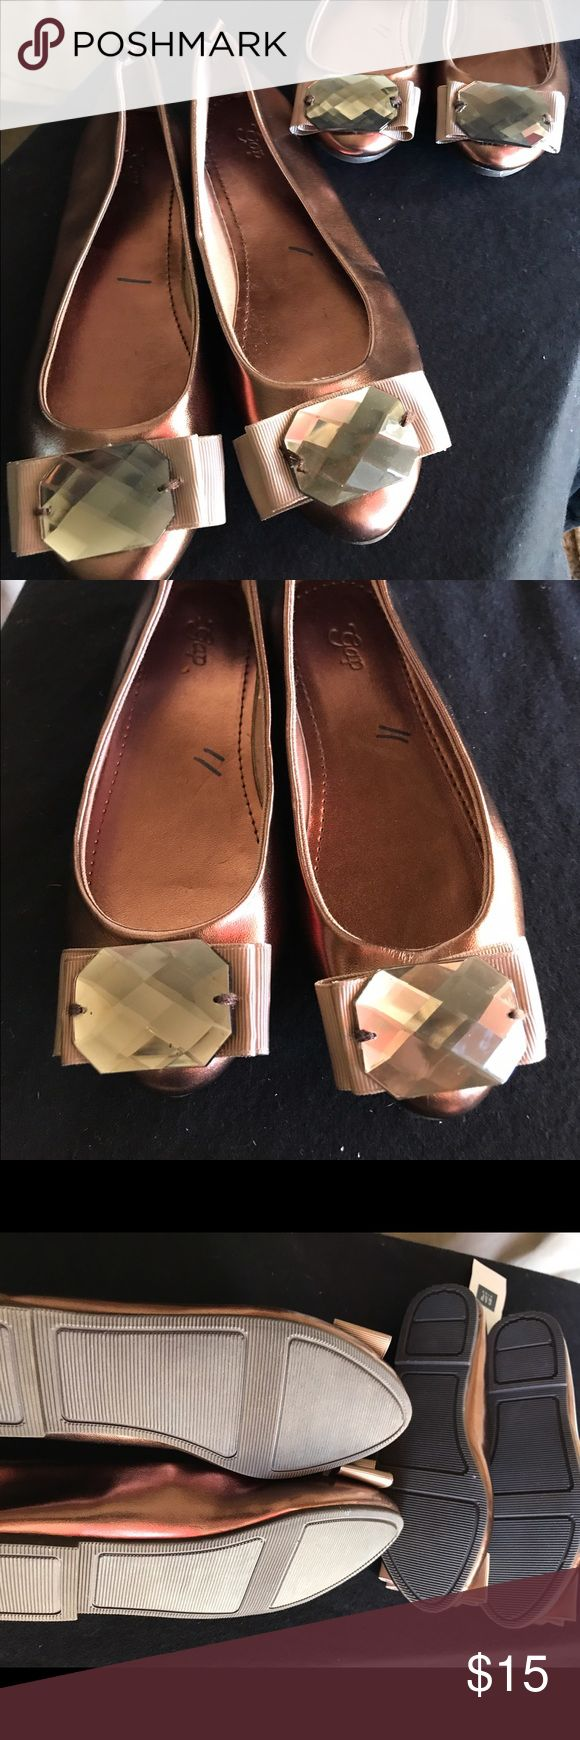 Girls bronze dress slip on shoes Gap  11 and 1 Straight off the wardrobe truck  of some undisclosed movie set,  I HAVE A LOAD  of adorable unworn, barely worn or slightly worn clothes, shoes, boots and sandals for kids and adults!        🎬👟👢👠👞🎬.                                  Gorgeous bronze with bronze gem dressy slip on flats for big sis and little sis. 2 pair will sell separate or together. Gap kids Shoes Dress Shoes